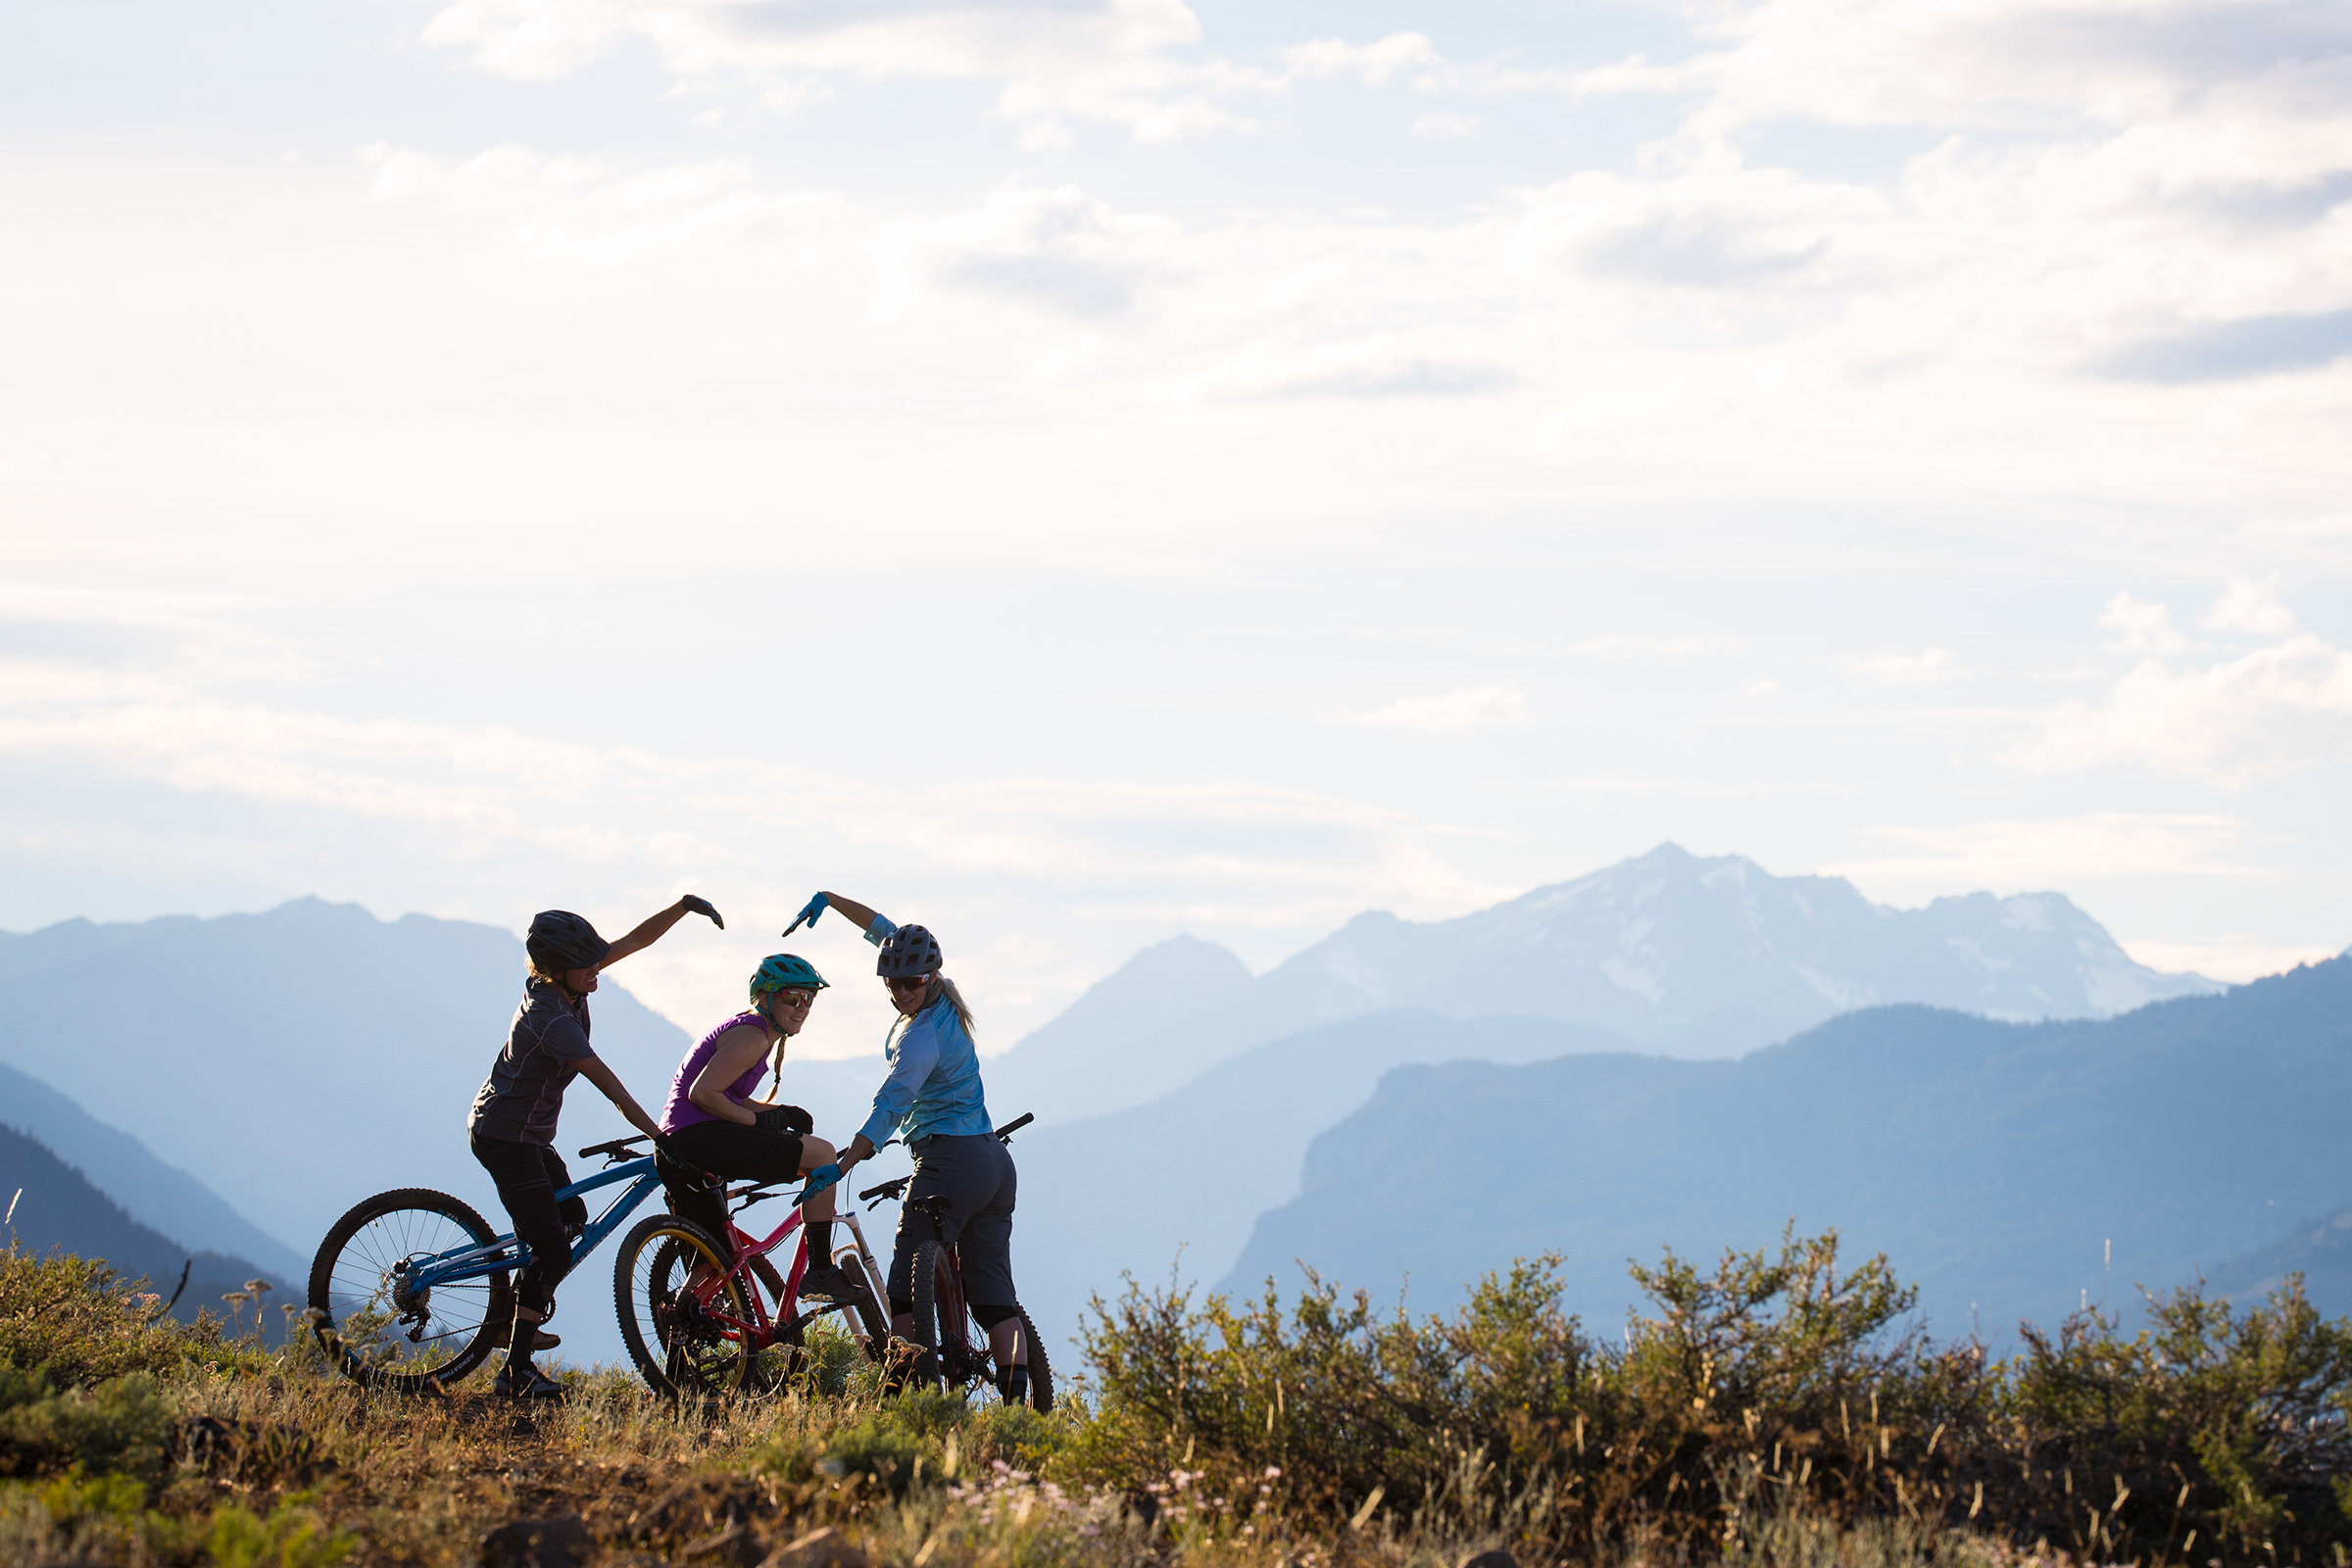 there's no shortage of inspiring women on mountain bikes